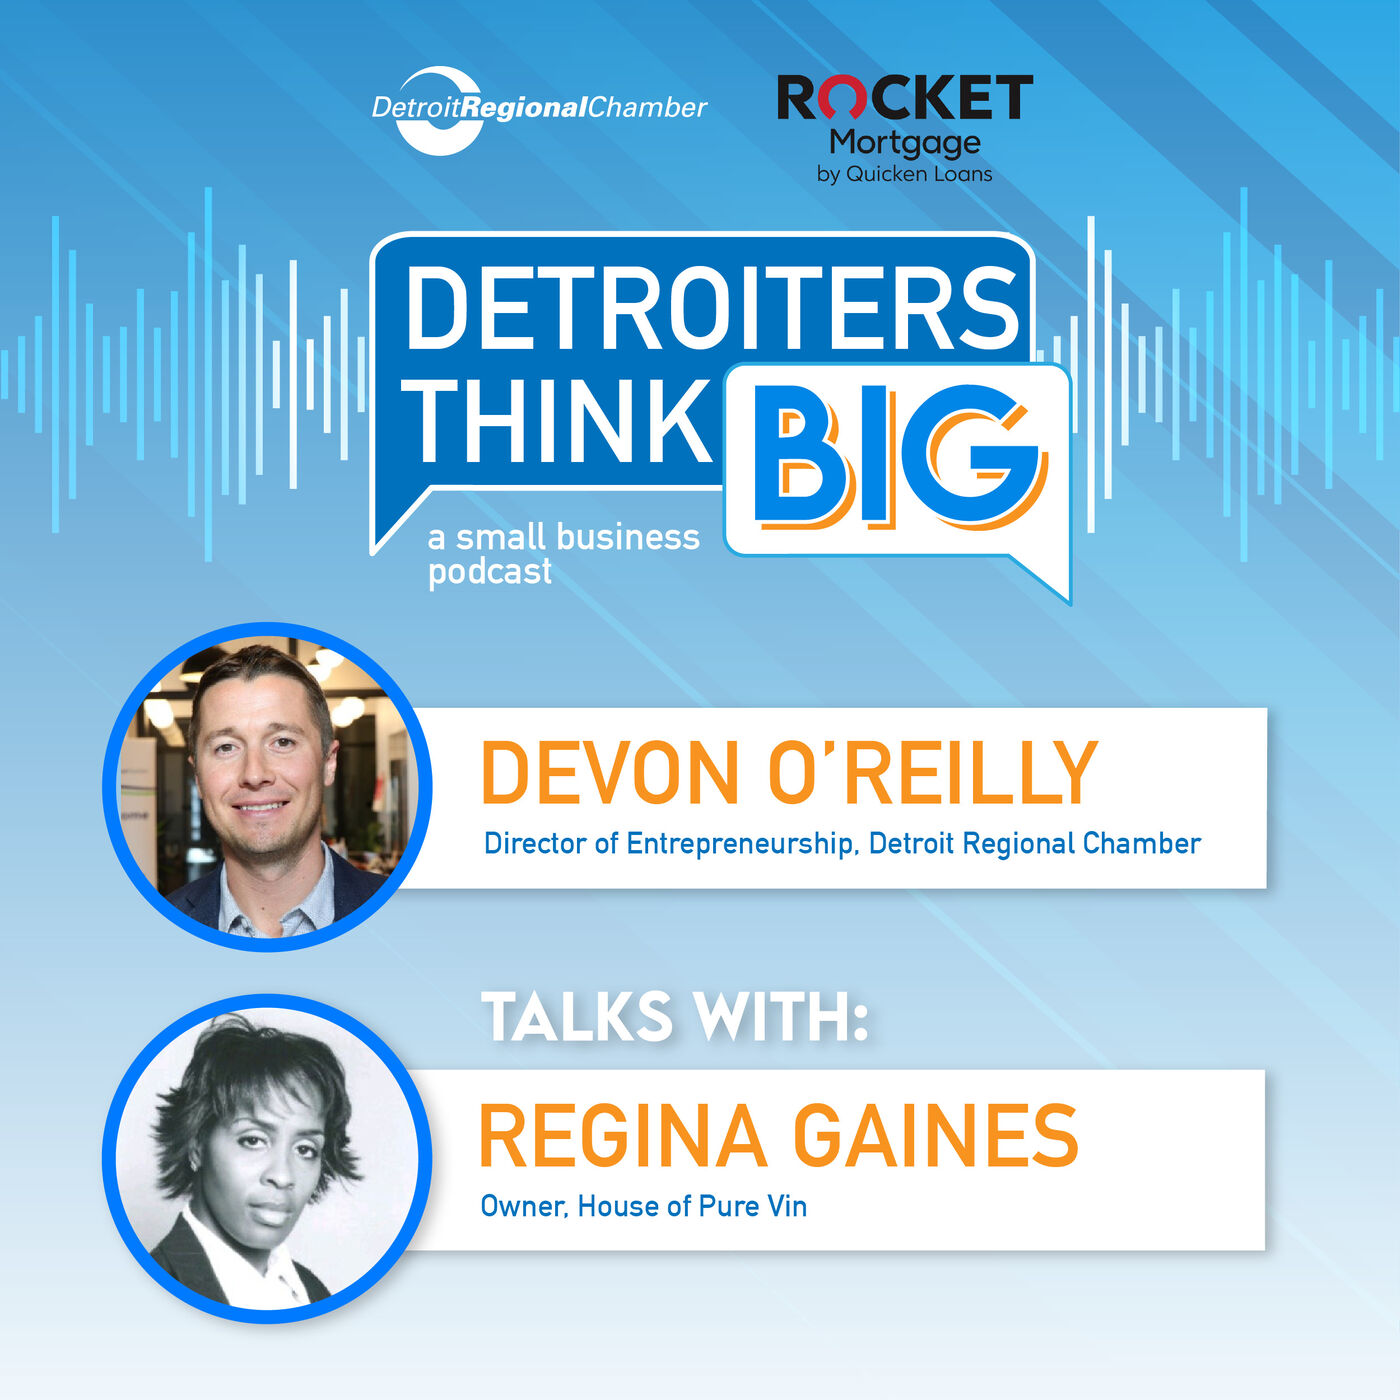 Detroiters Think Big: A Small Business Podcast | Regina Gaines of House of Pure Vin